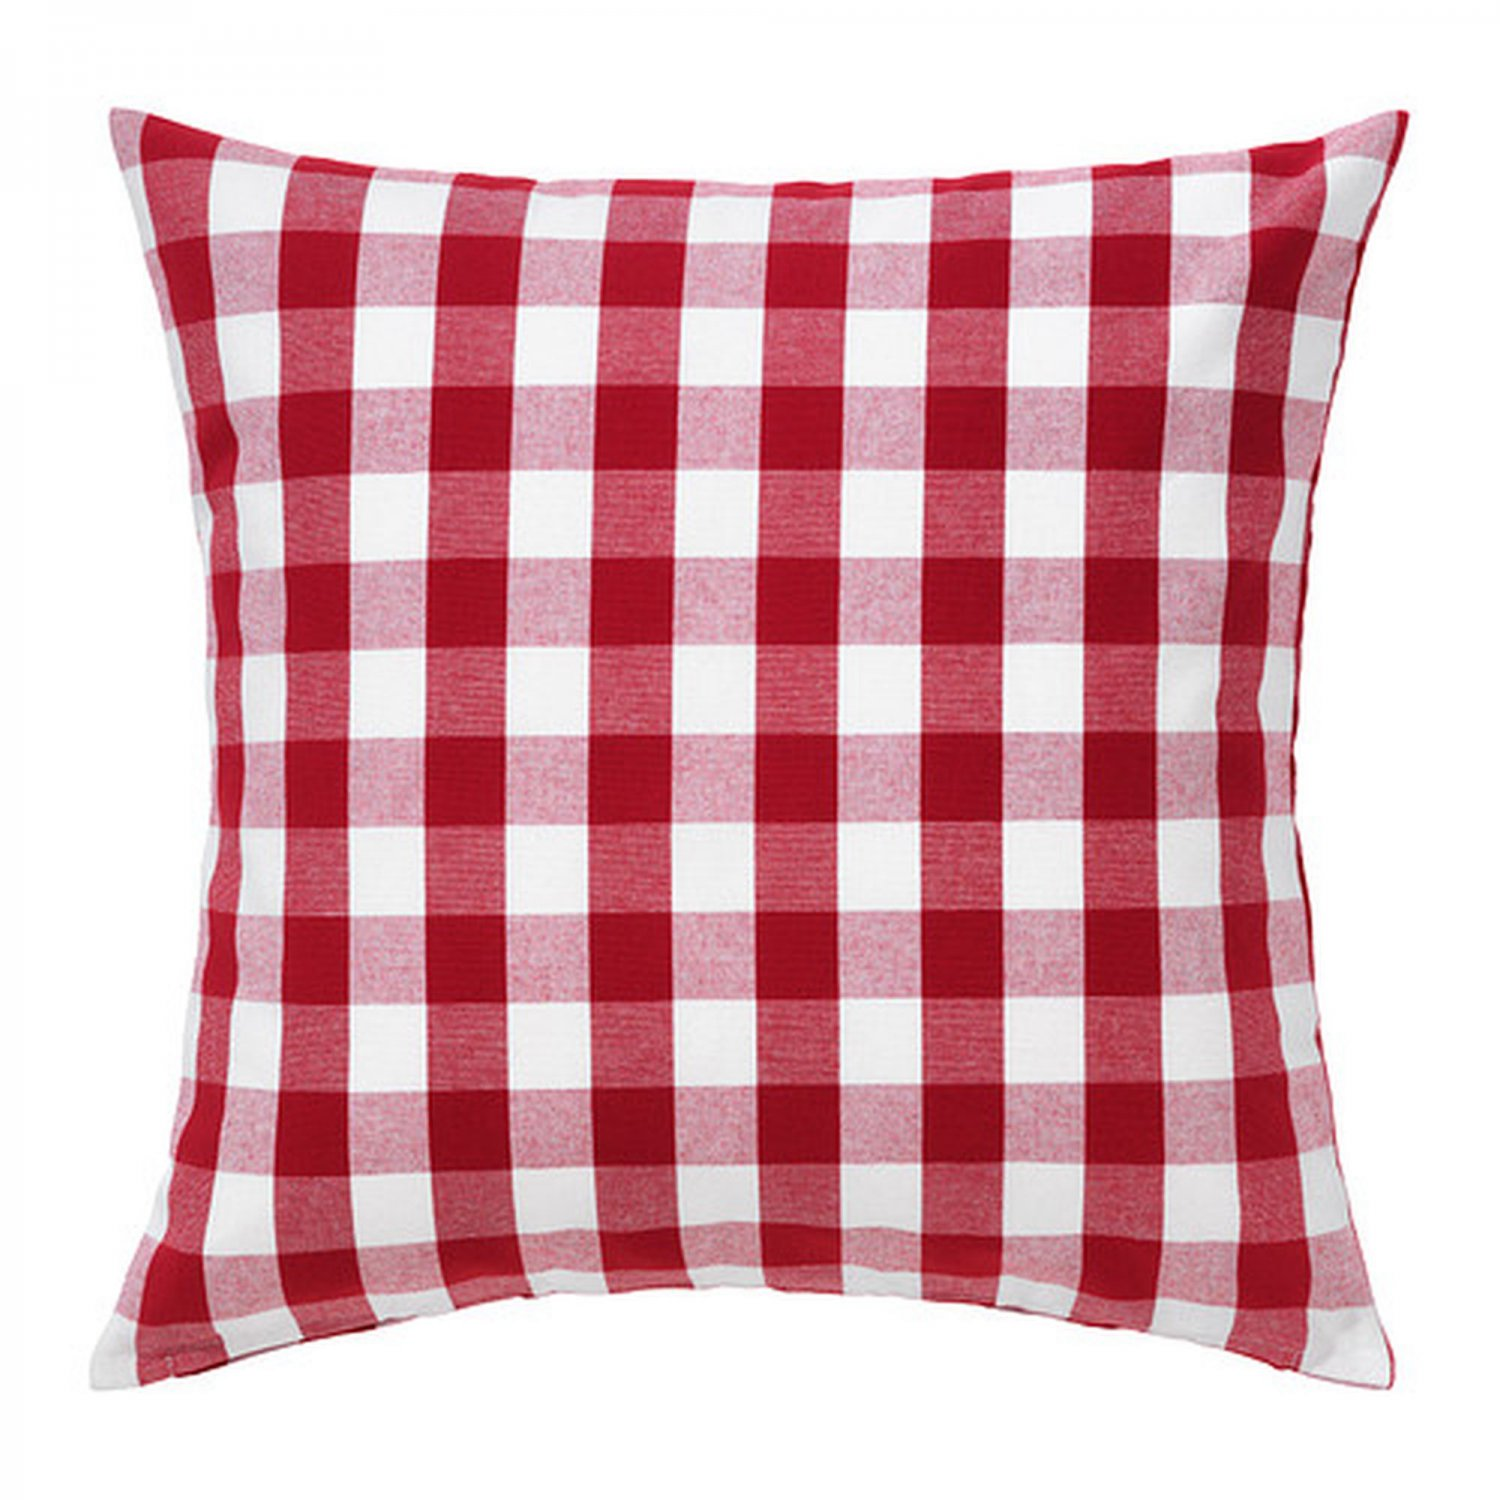 Ikea Smanate Cushion Cover Pillow Sham Red White Checkered